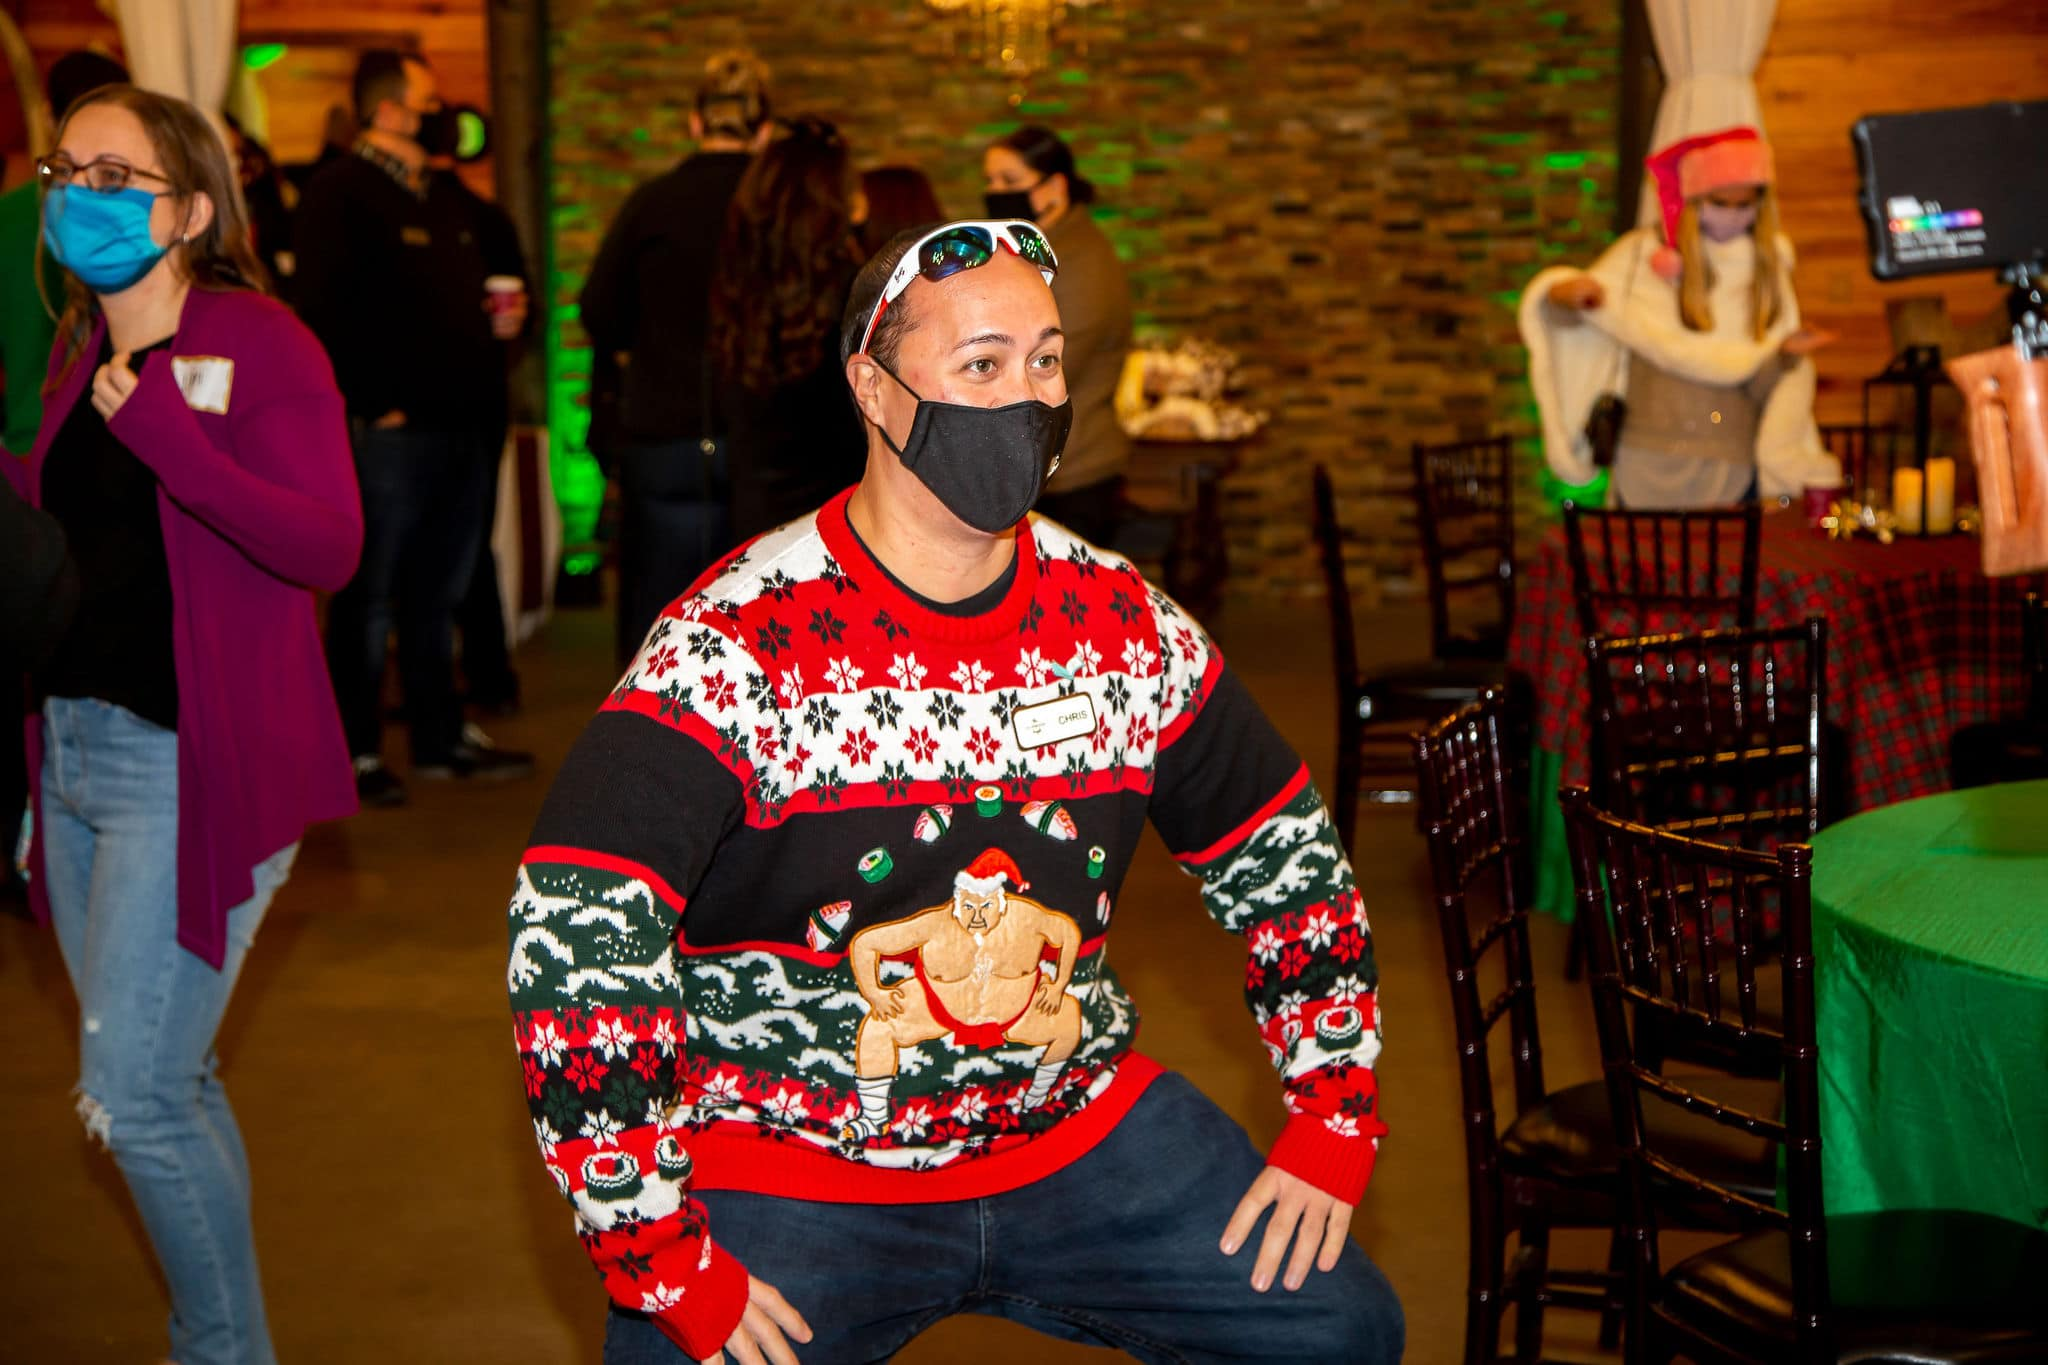 man wearing sumo wrestler festive sweater replicates pose of sumo wrestle on sweater with knees bent and hands on legs while wearing black face covering and sunglasses on head